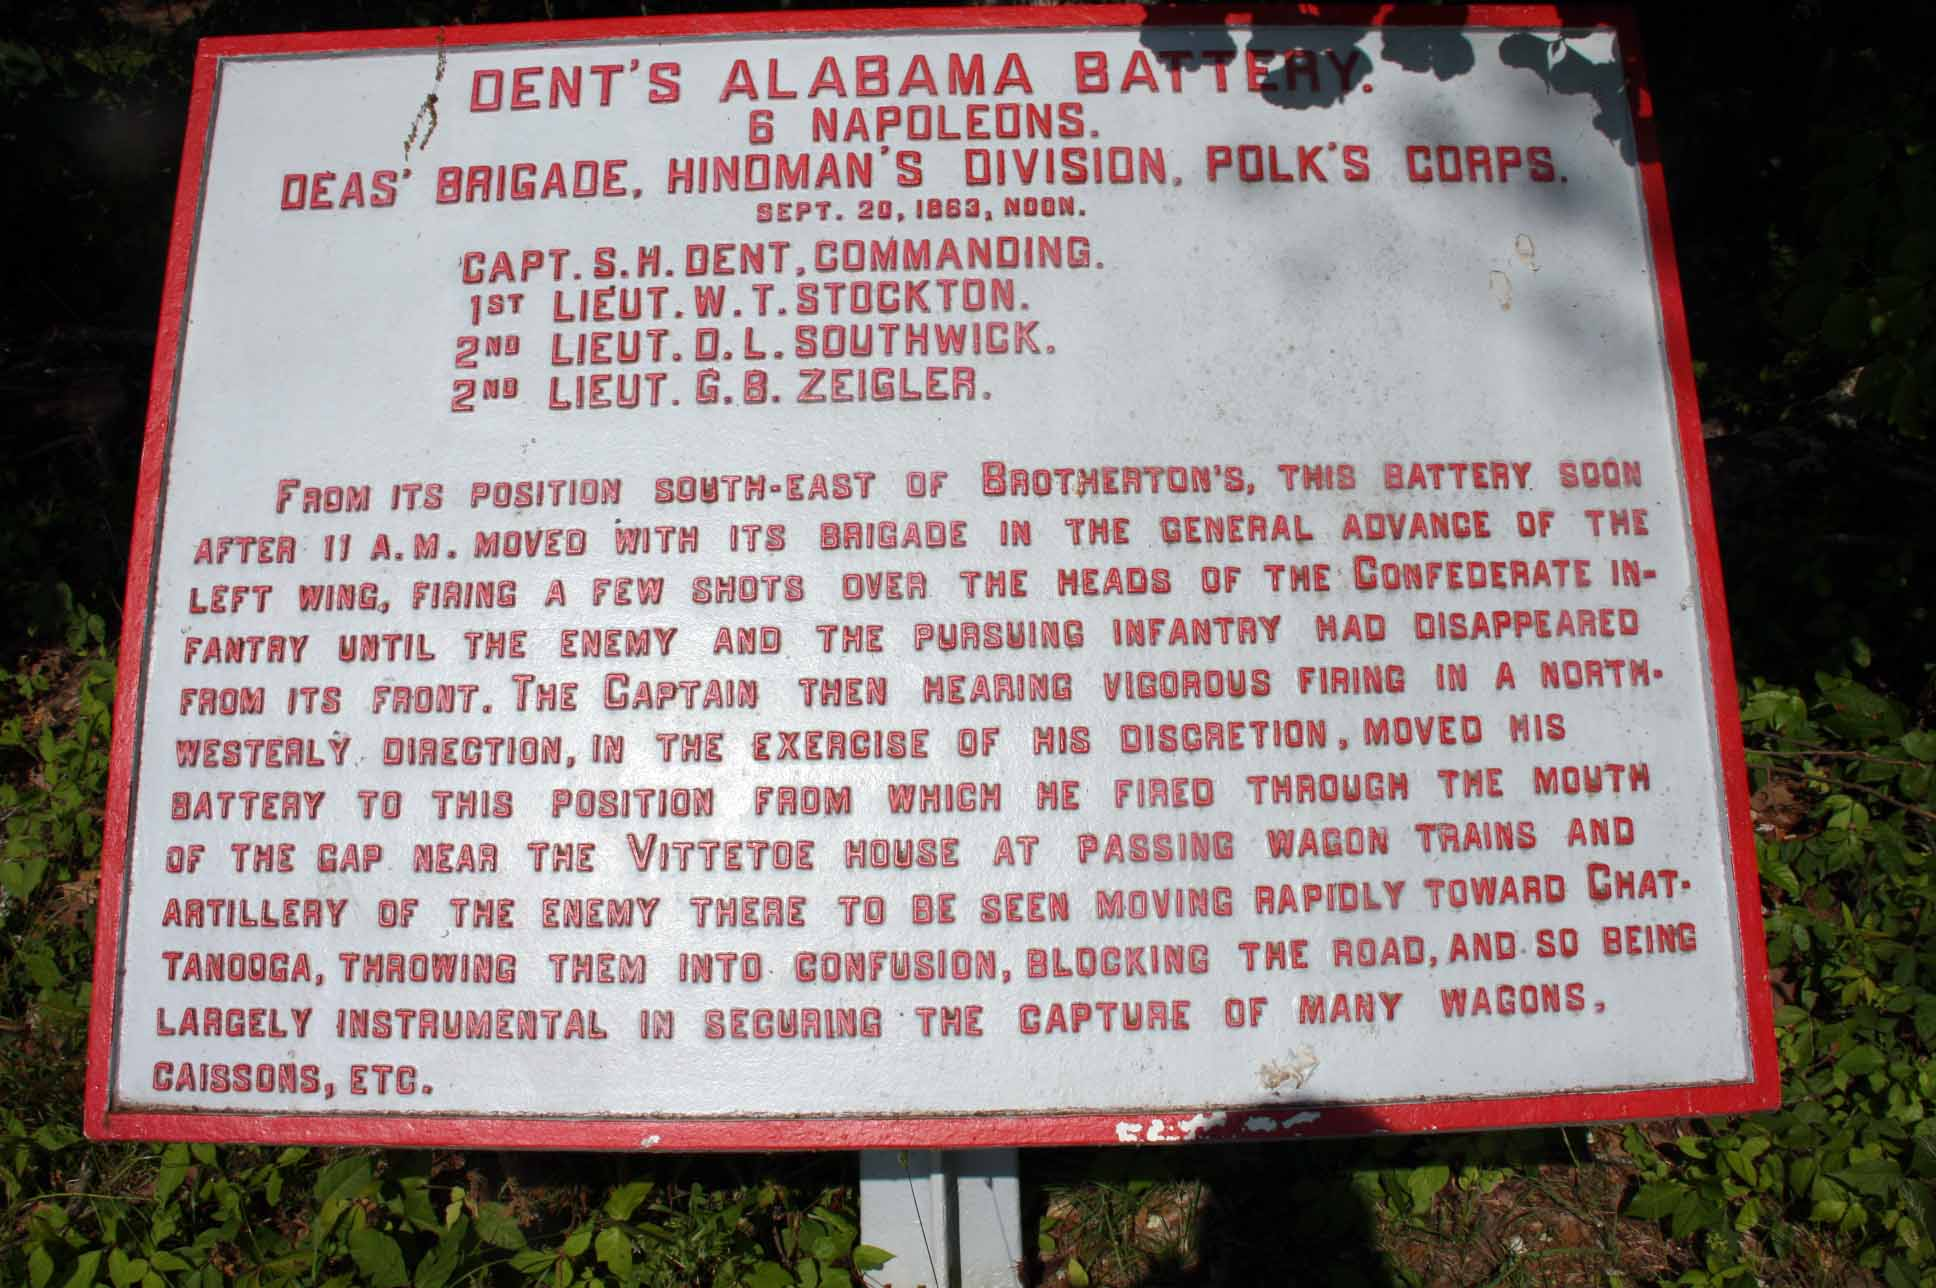 Dent's Alabama Battery Tablet, click photo to enlarge.